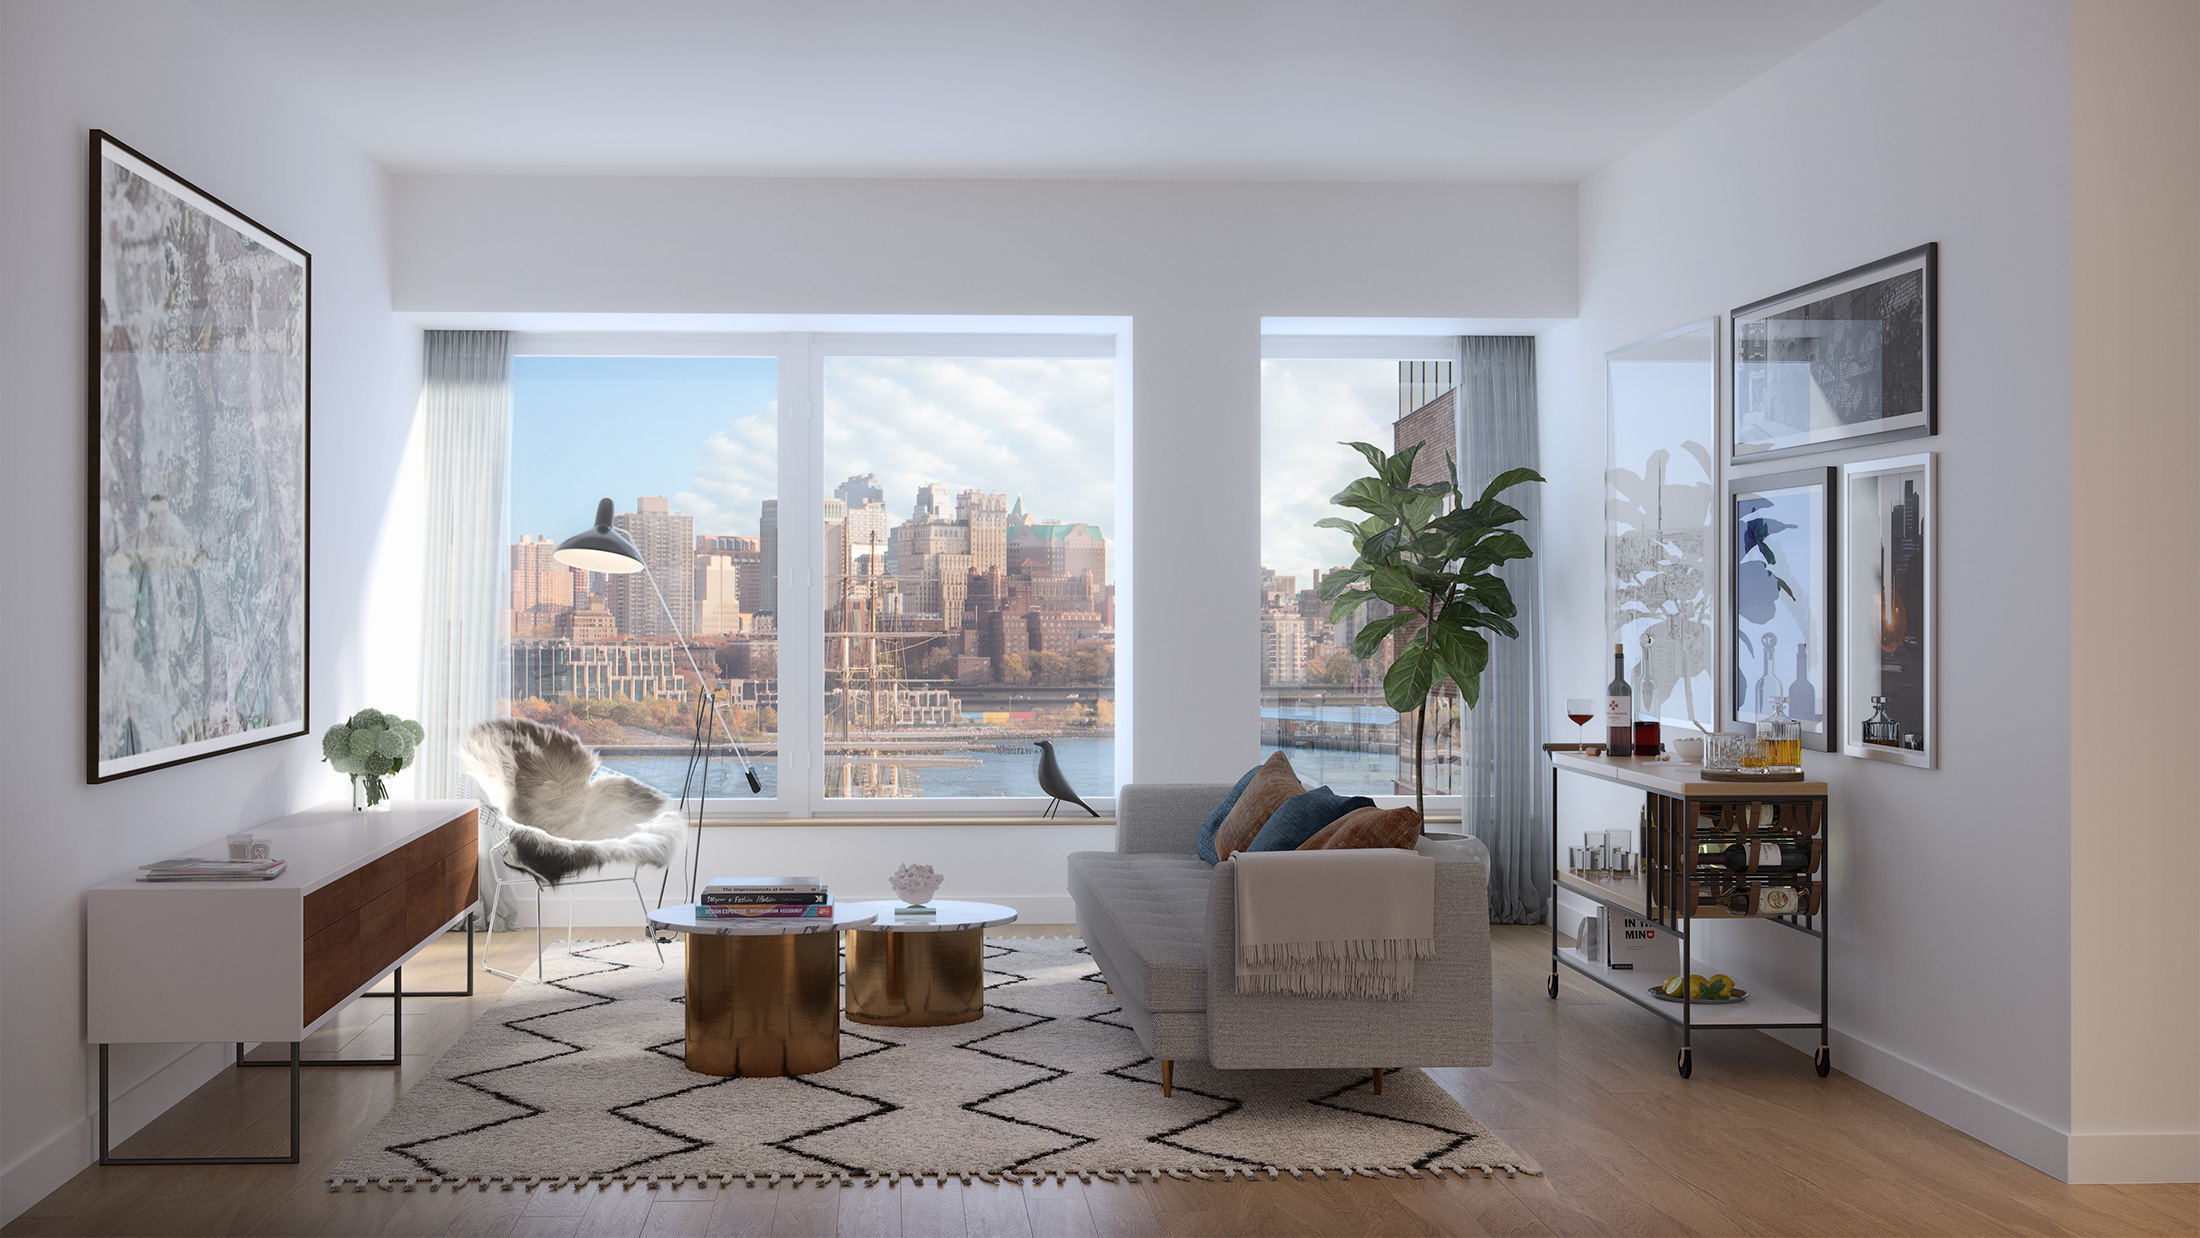 Architectural Rendering of the living room of the 180 Water Street project located in the Financial District, New York City